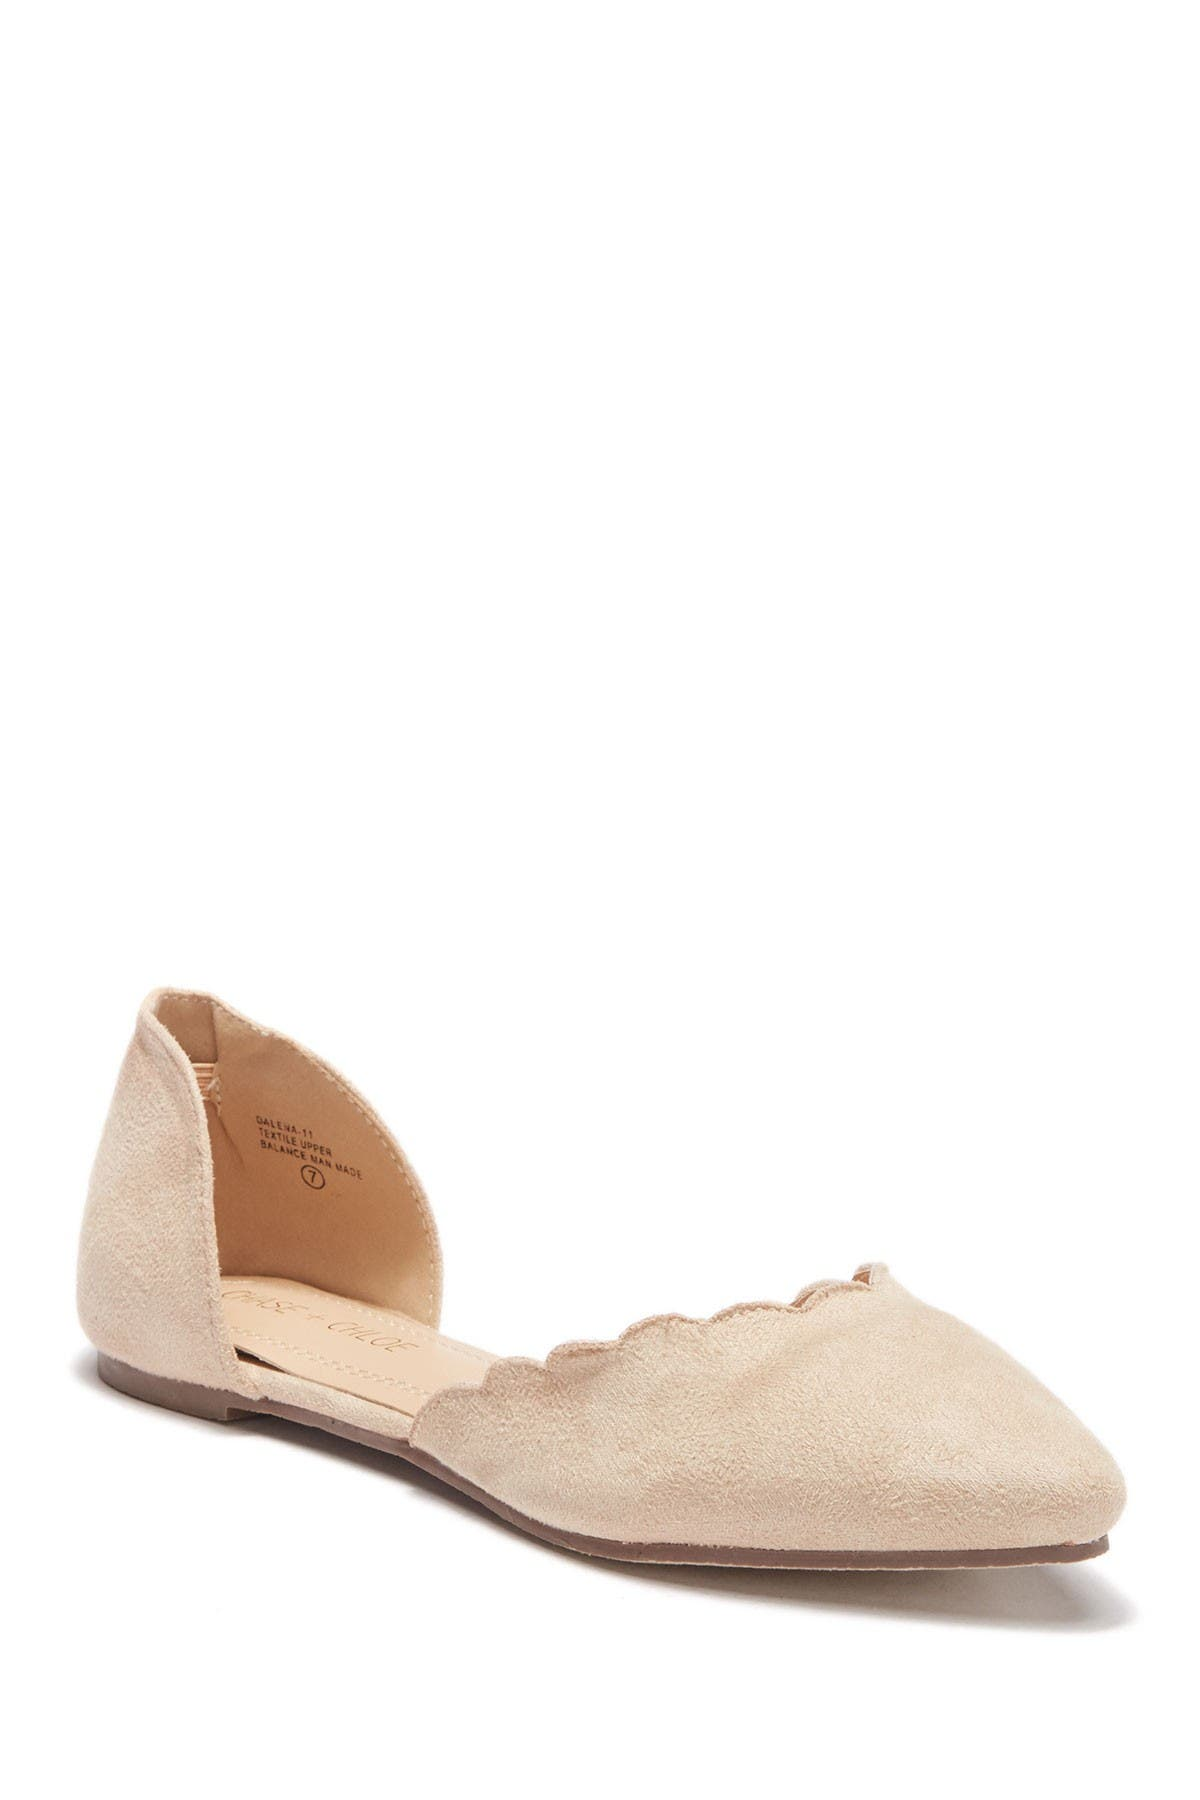 Image of Chase & Chloe Dalena Scallop Pointy Flat